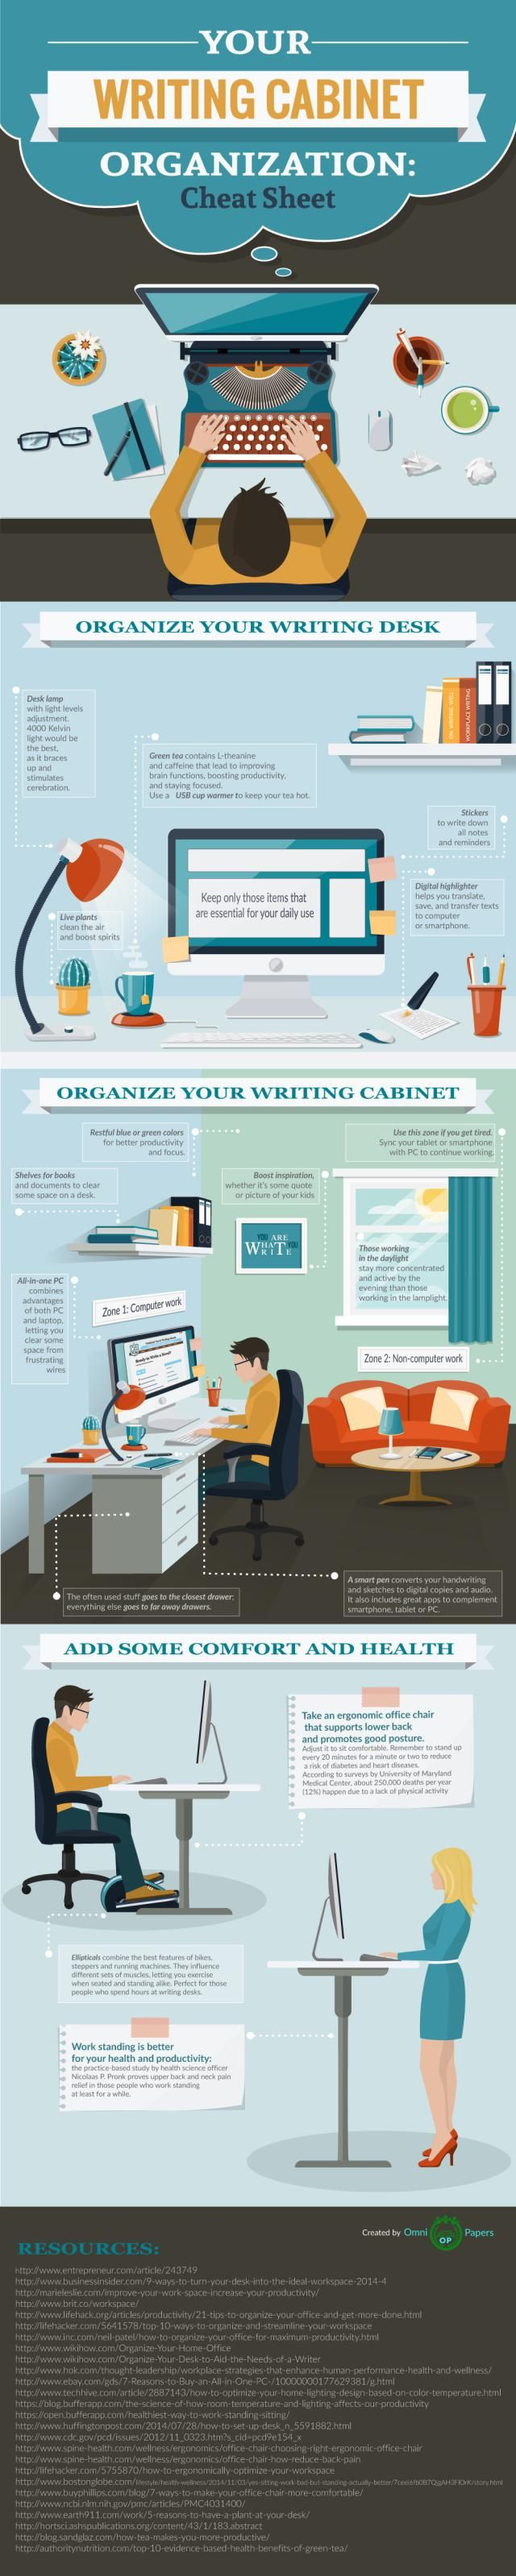 Writers: Organize Your Home Office in Just 3 Steps: How to organize your home office, courtesy of OmniPapers.